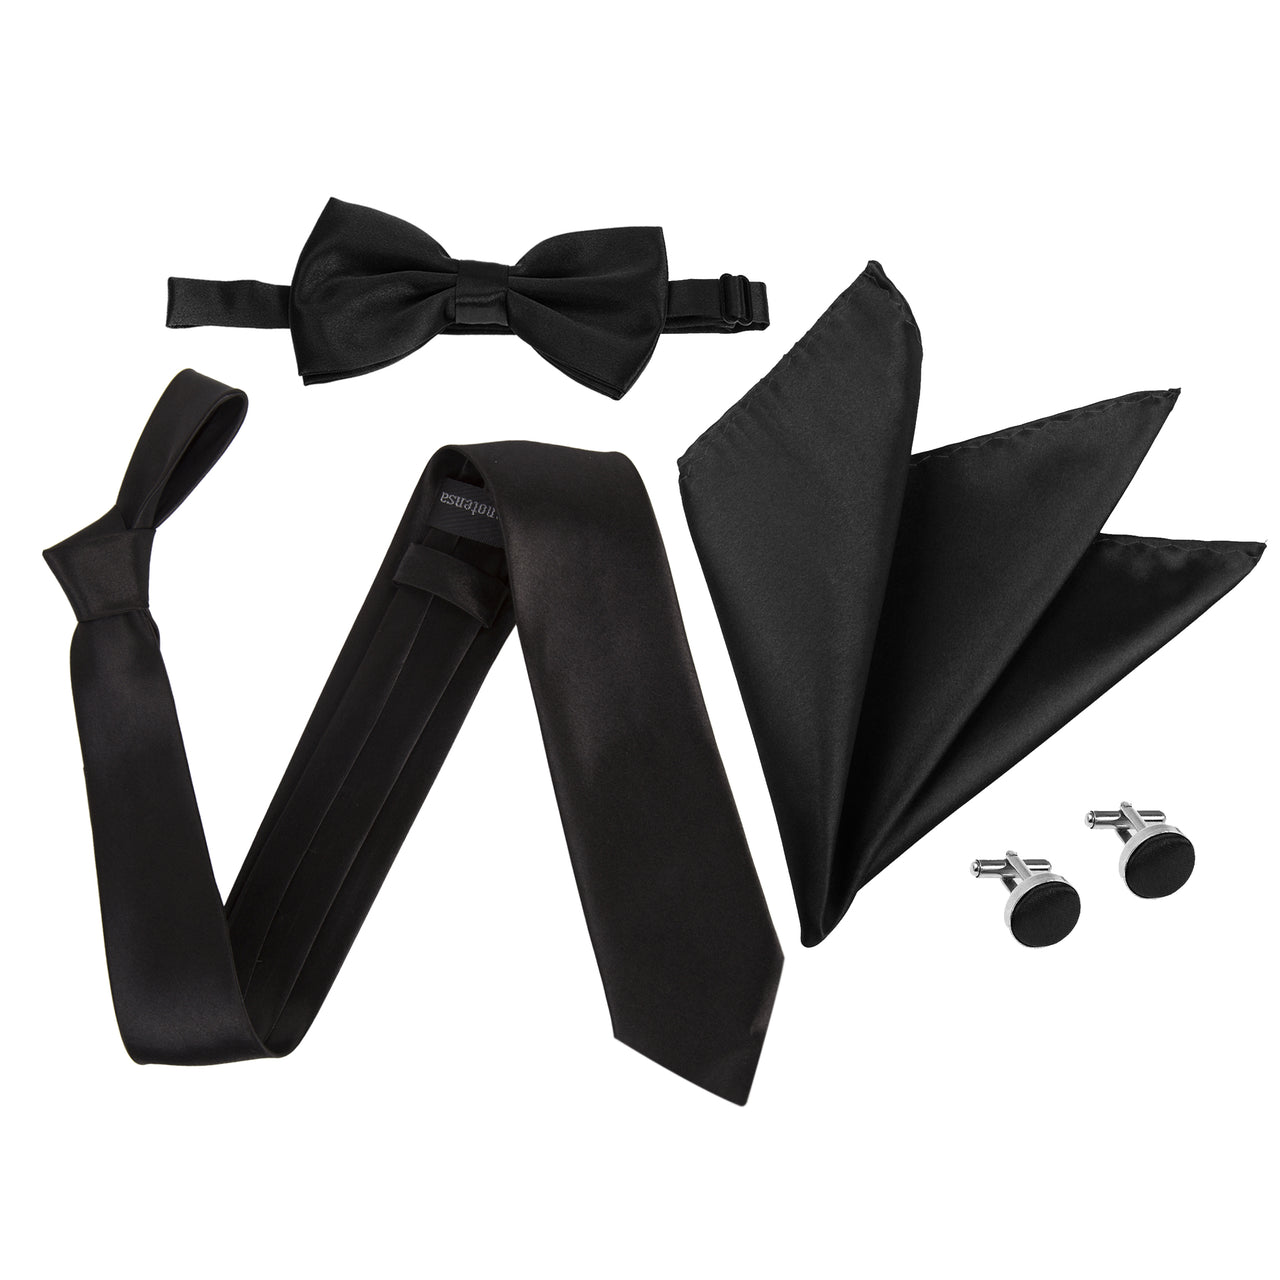 "4pc Tie Set: Wide 3"" Tie, Bow Tie, Handkerchief & Cufflinks - Black"